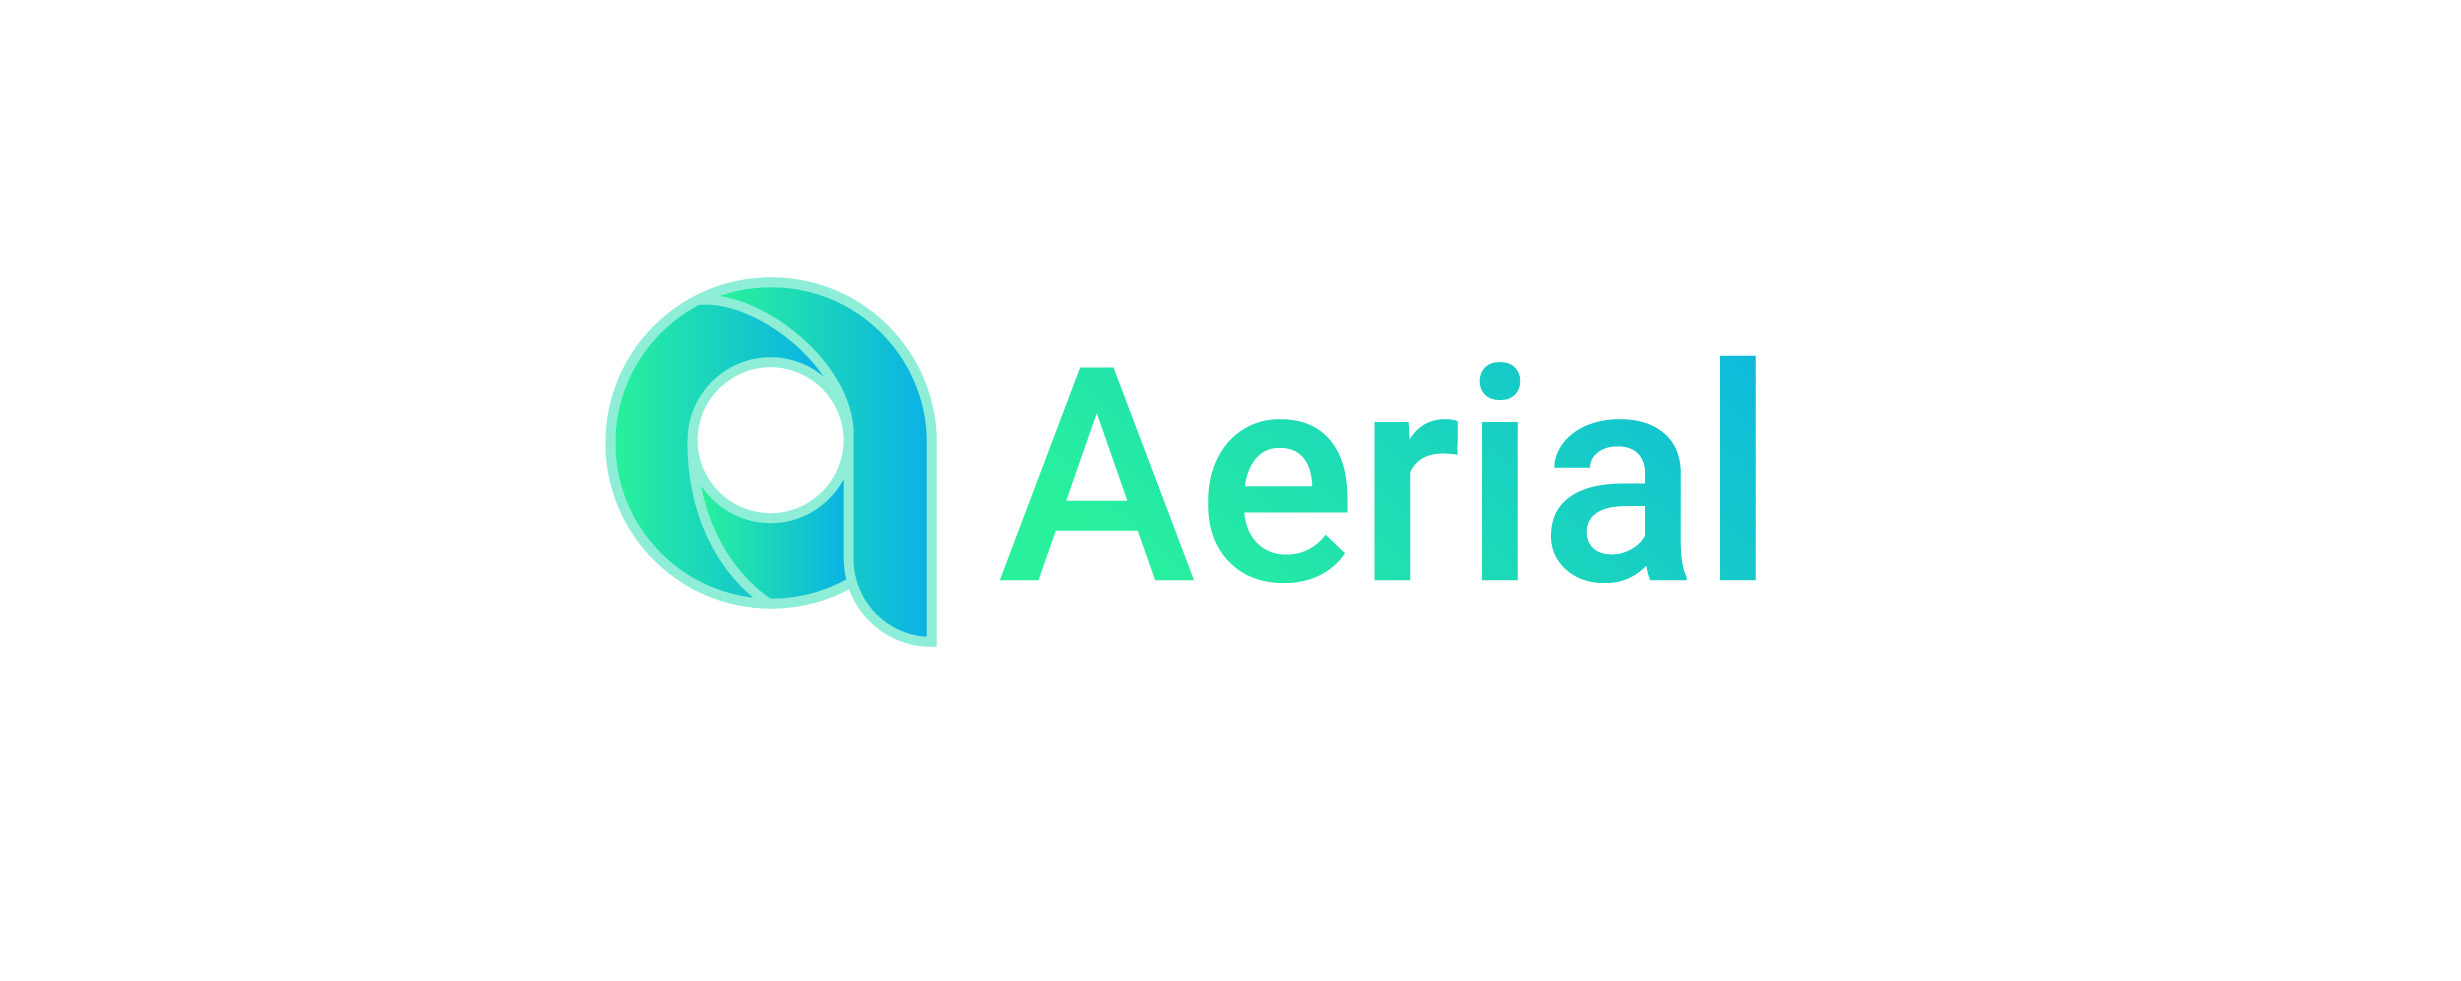 A logo for a company called Aerial. The logo shows the letter a as logo for the brand.